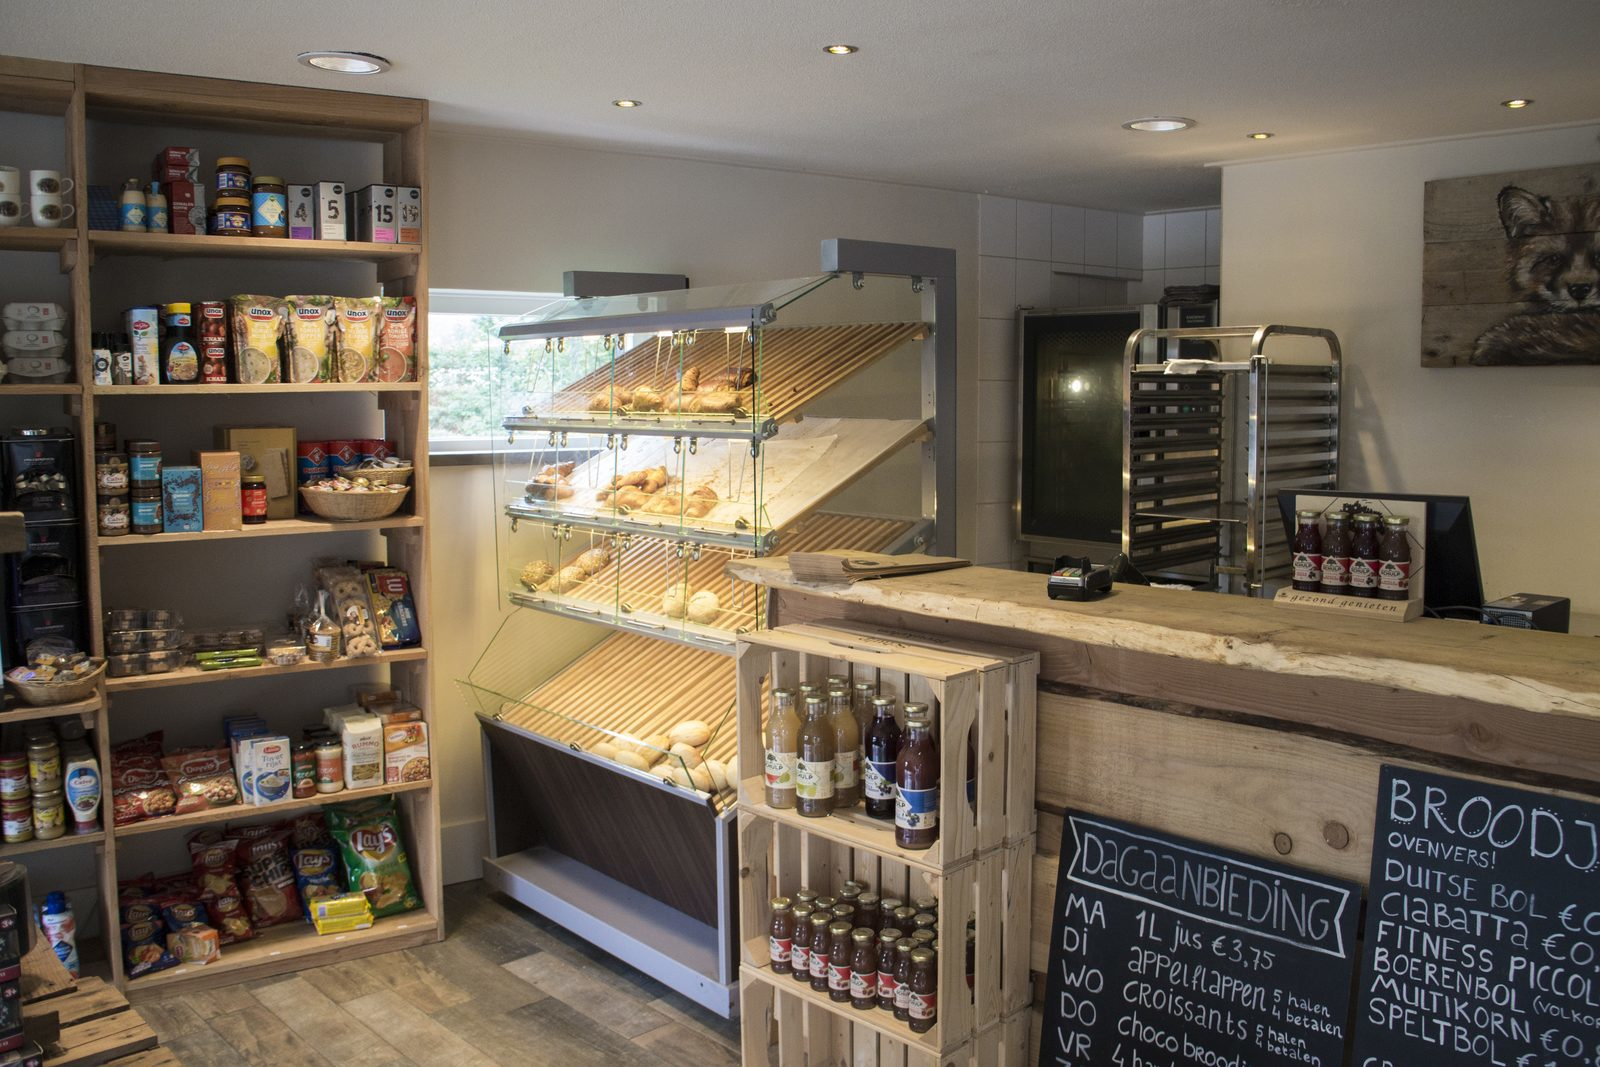 EuroParcs Resort De Wije Werelt facility breakfast shop look inside